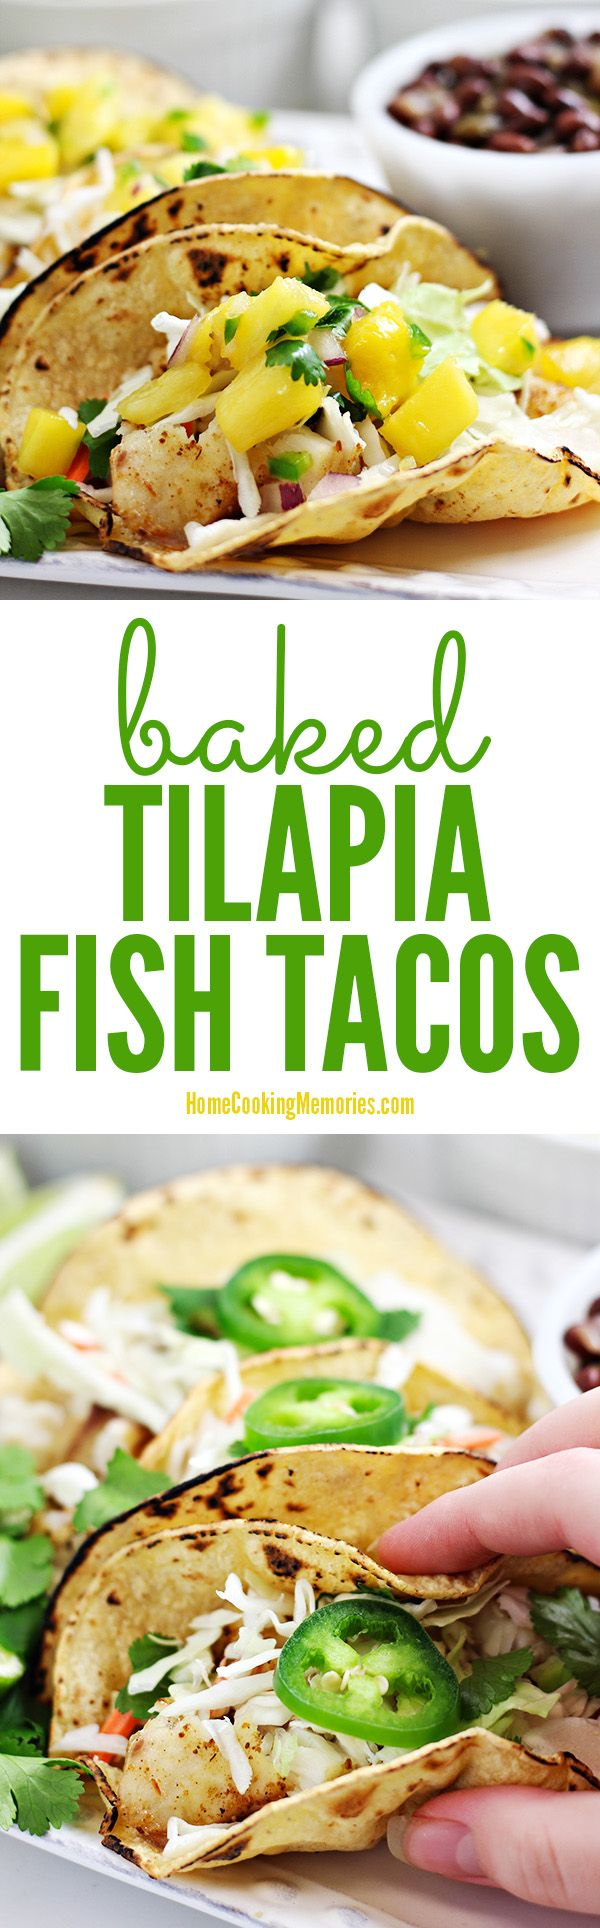 100 baked tilapia recipes on pinterest healthy tilapia for Simple fish taco recipe